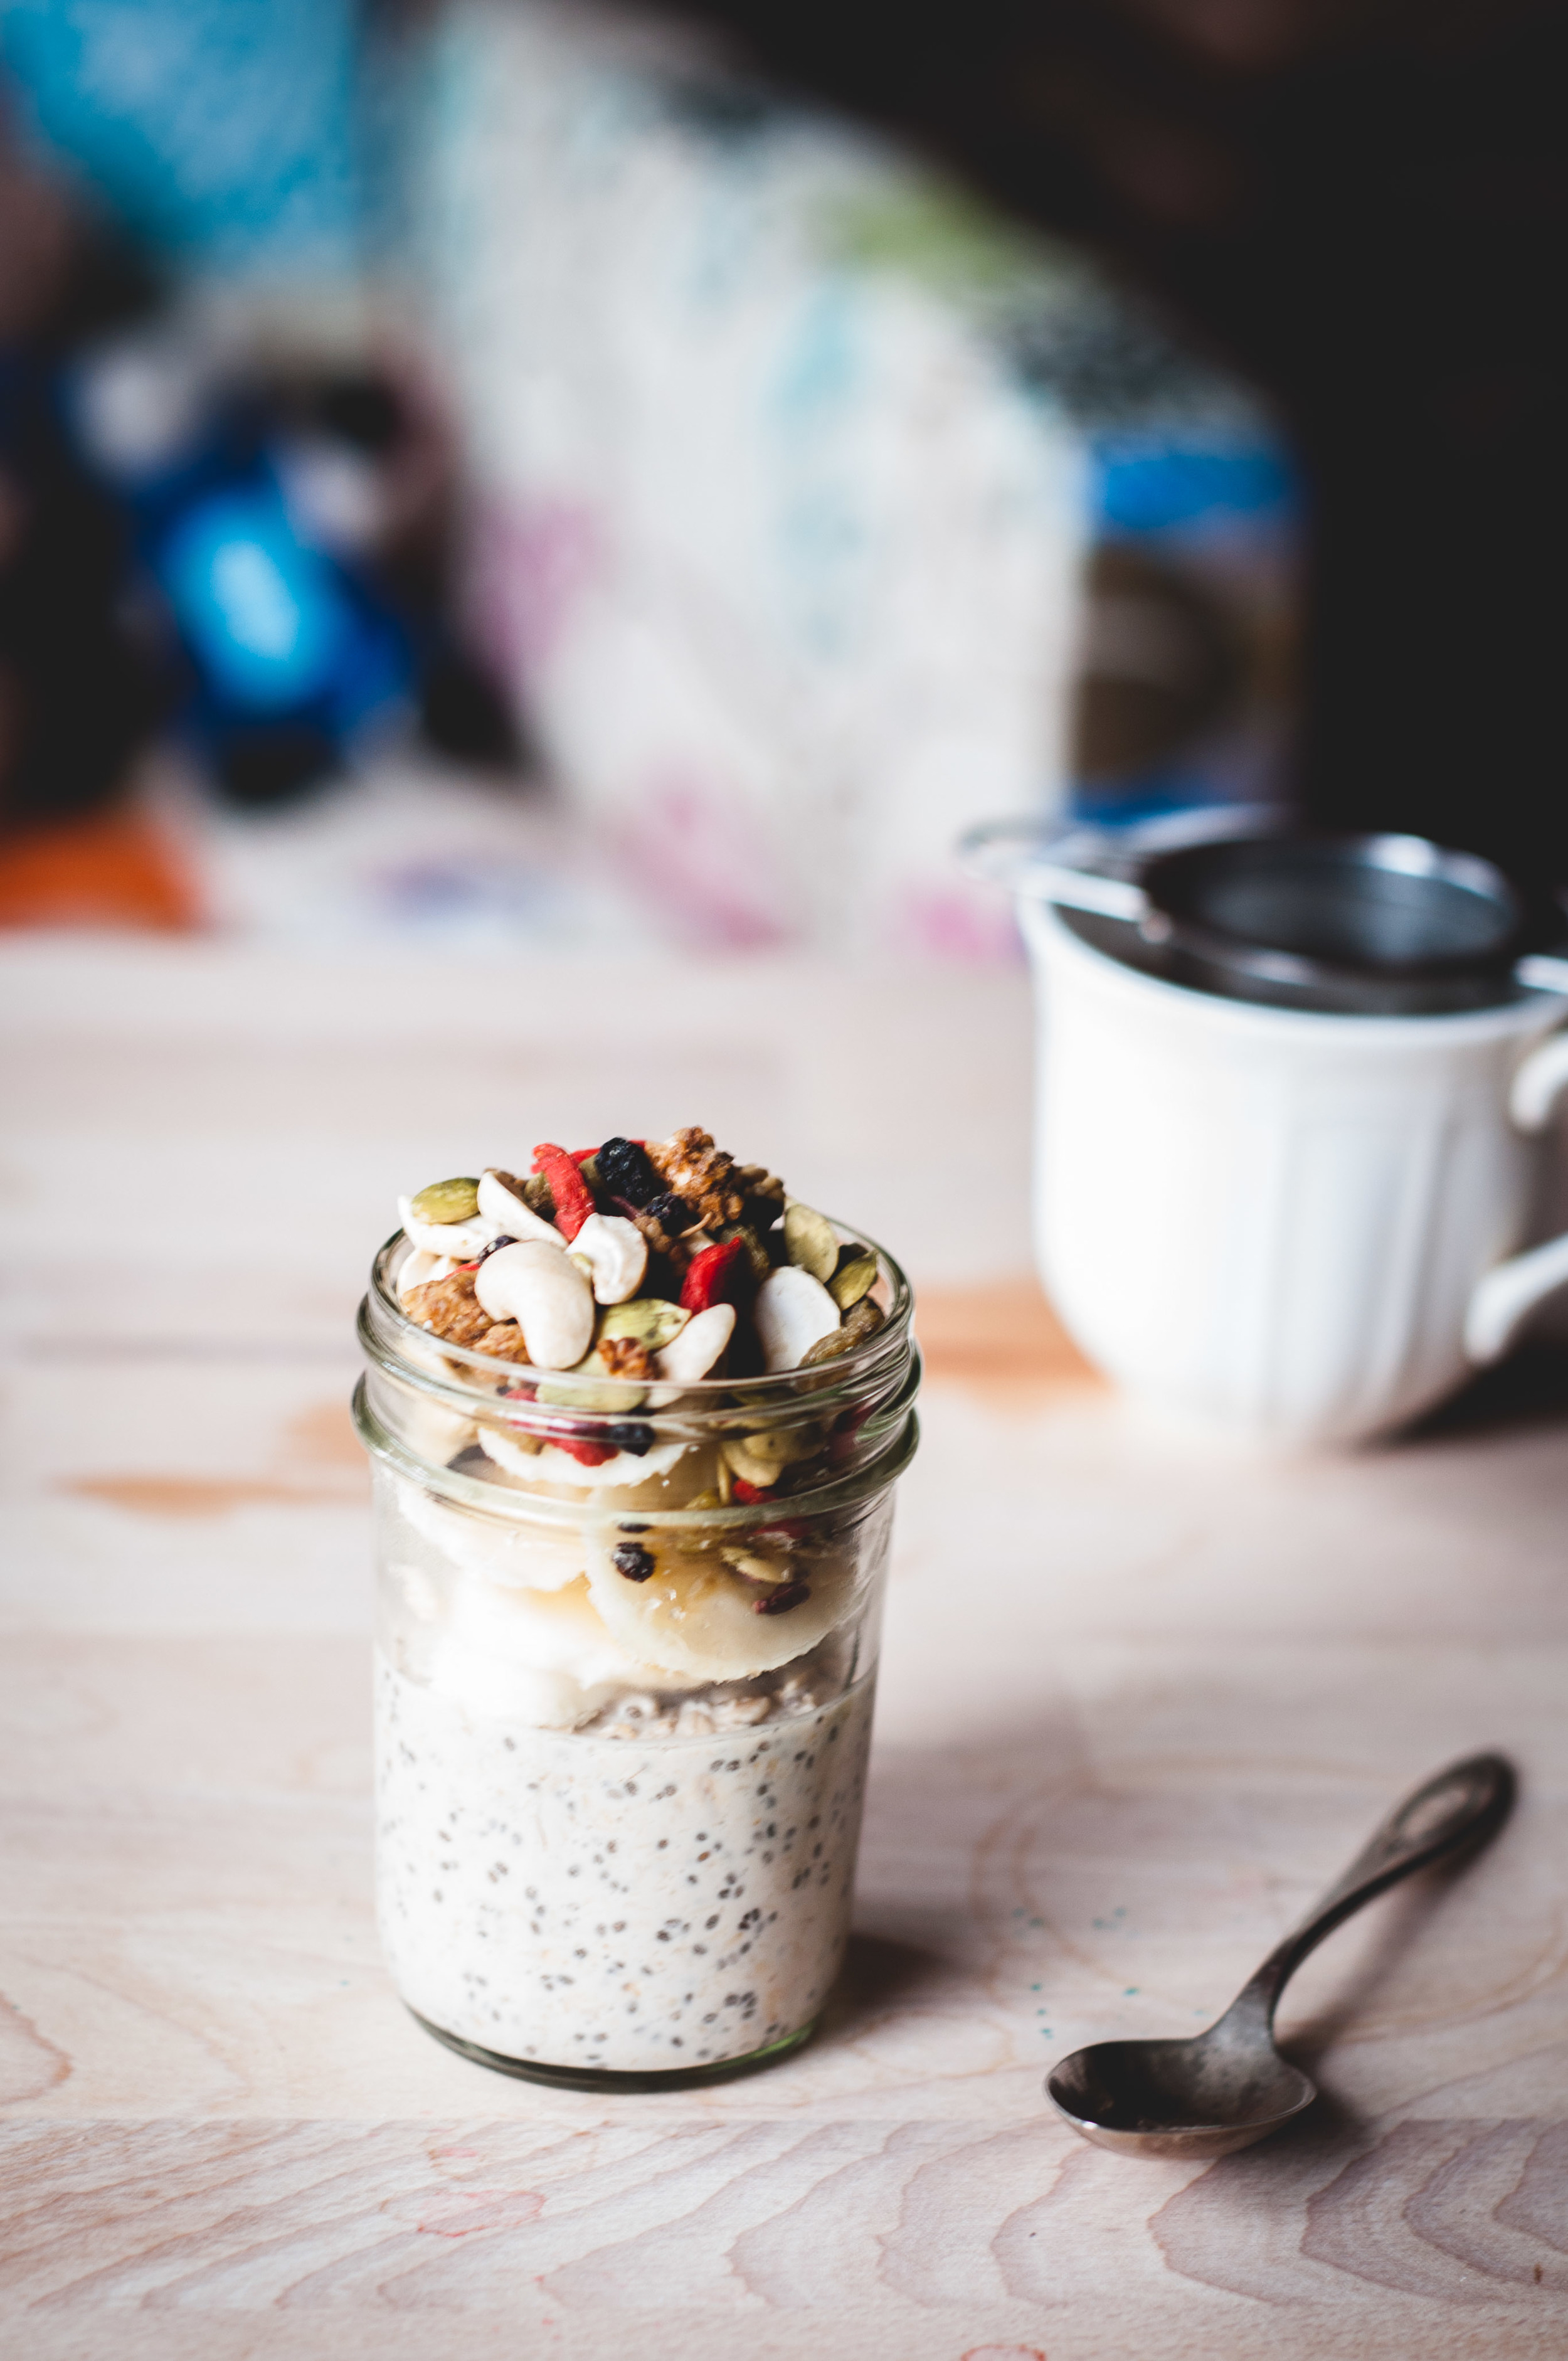 Oat, Chia and Coconut Milk Fruit Parfaits from ashaFSK